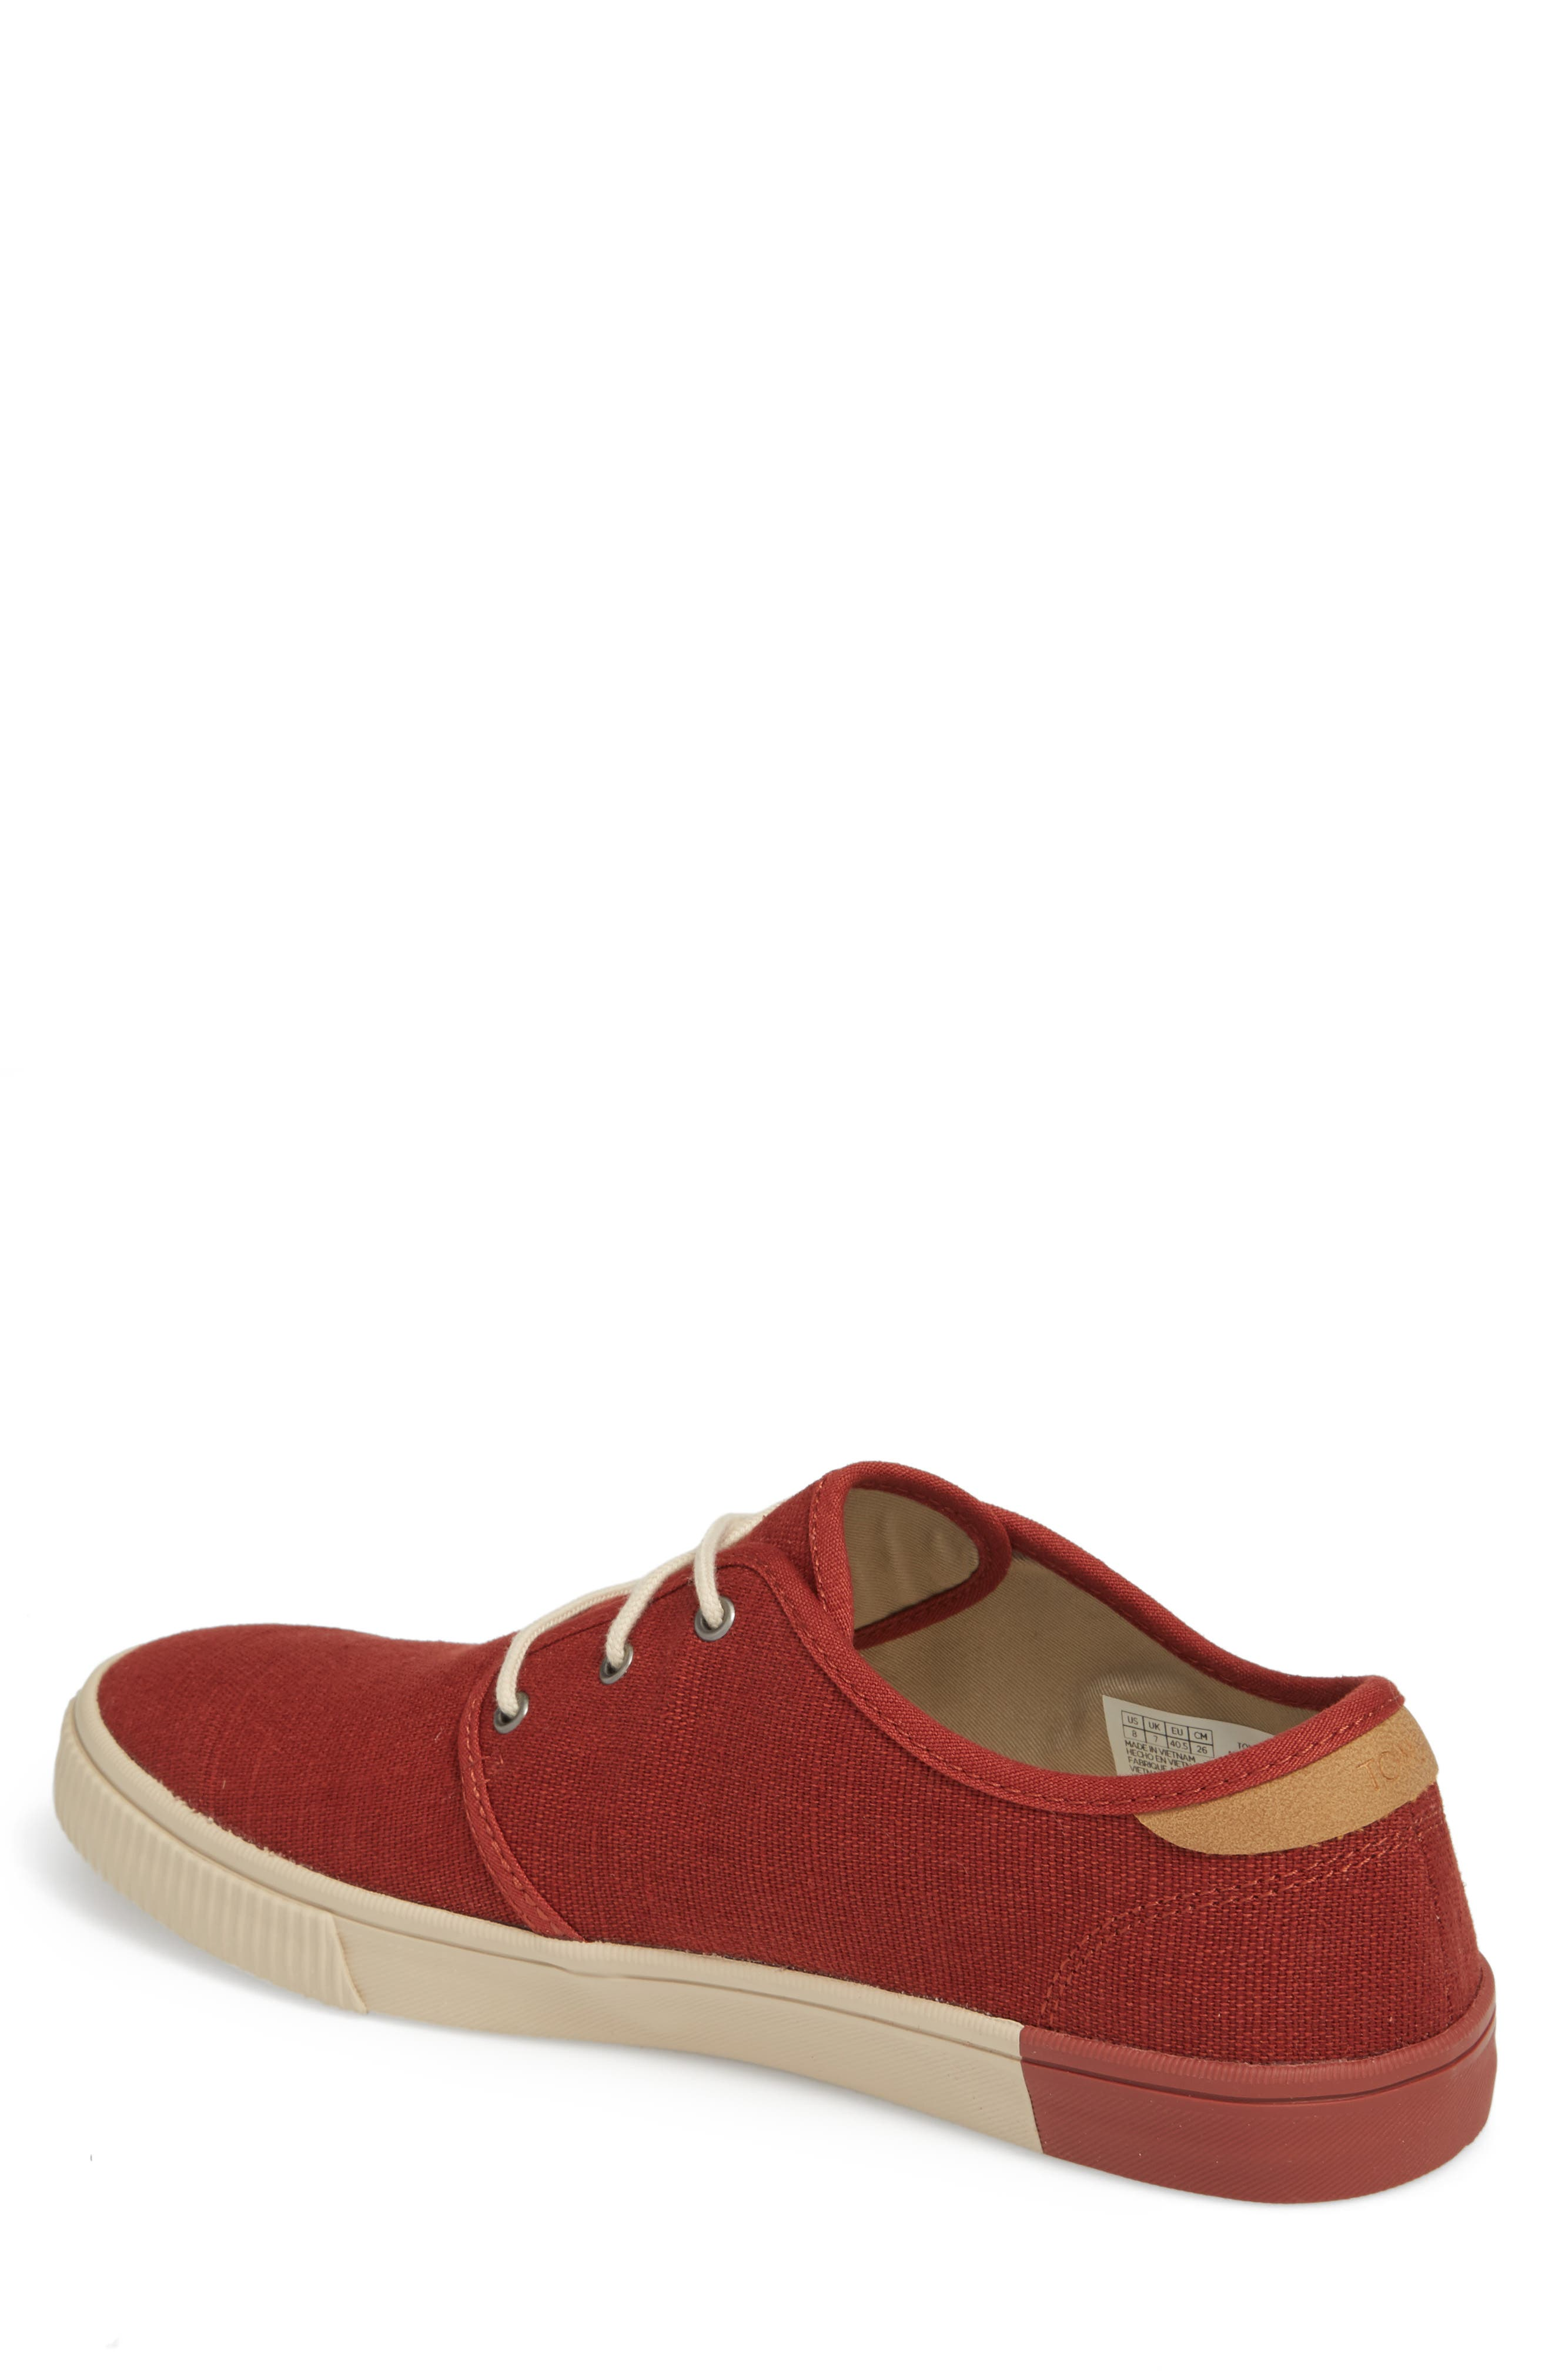 Carlo Low Top Sneaker,                             Alternate thumbnail 2, color,                             Burnt Henna Heritage Canvas